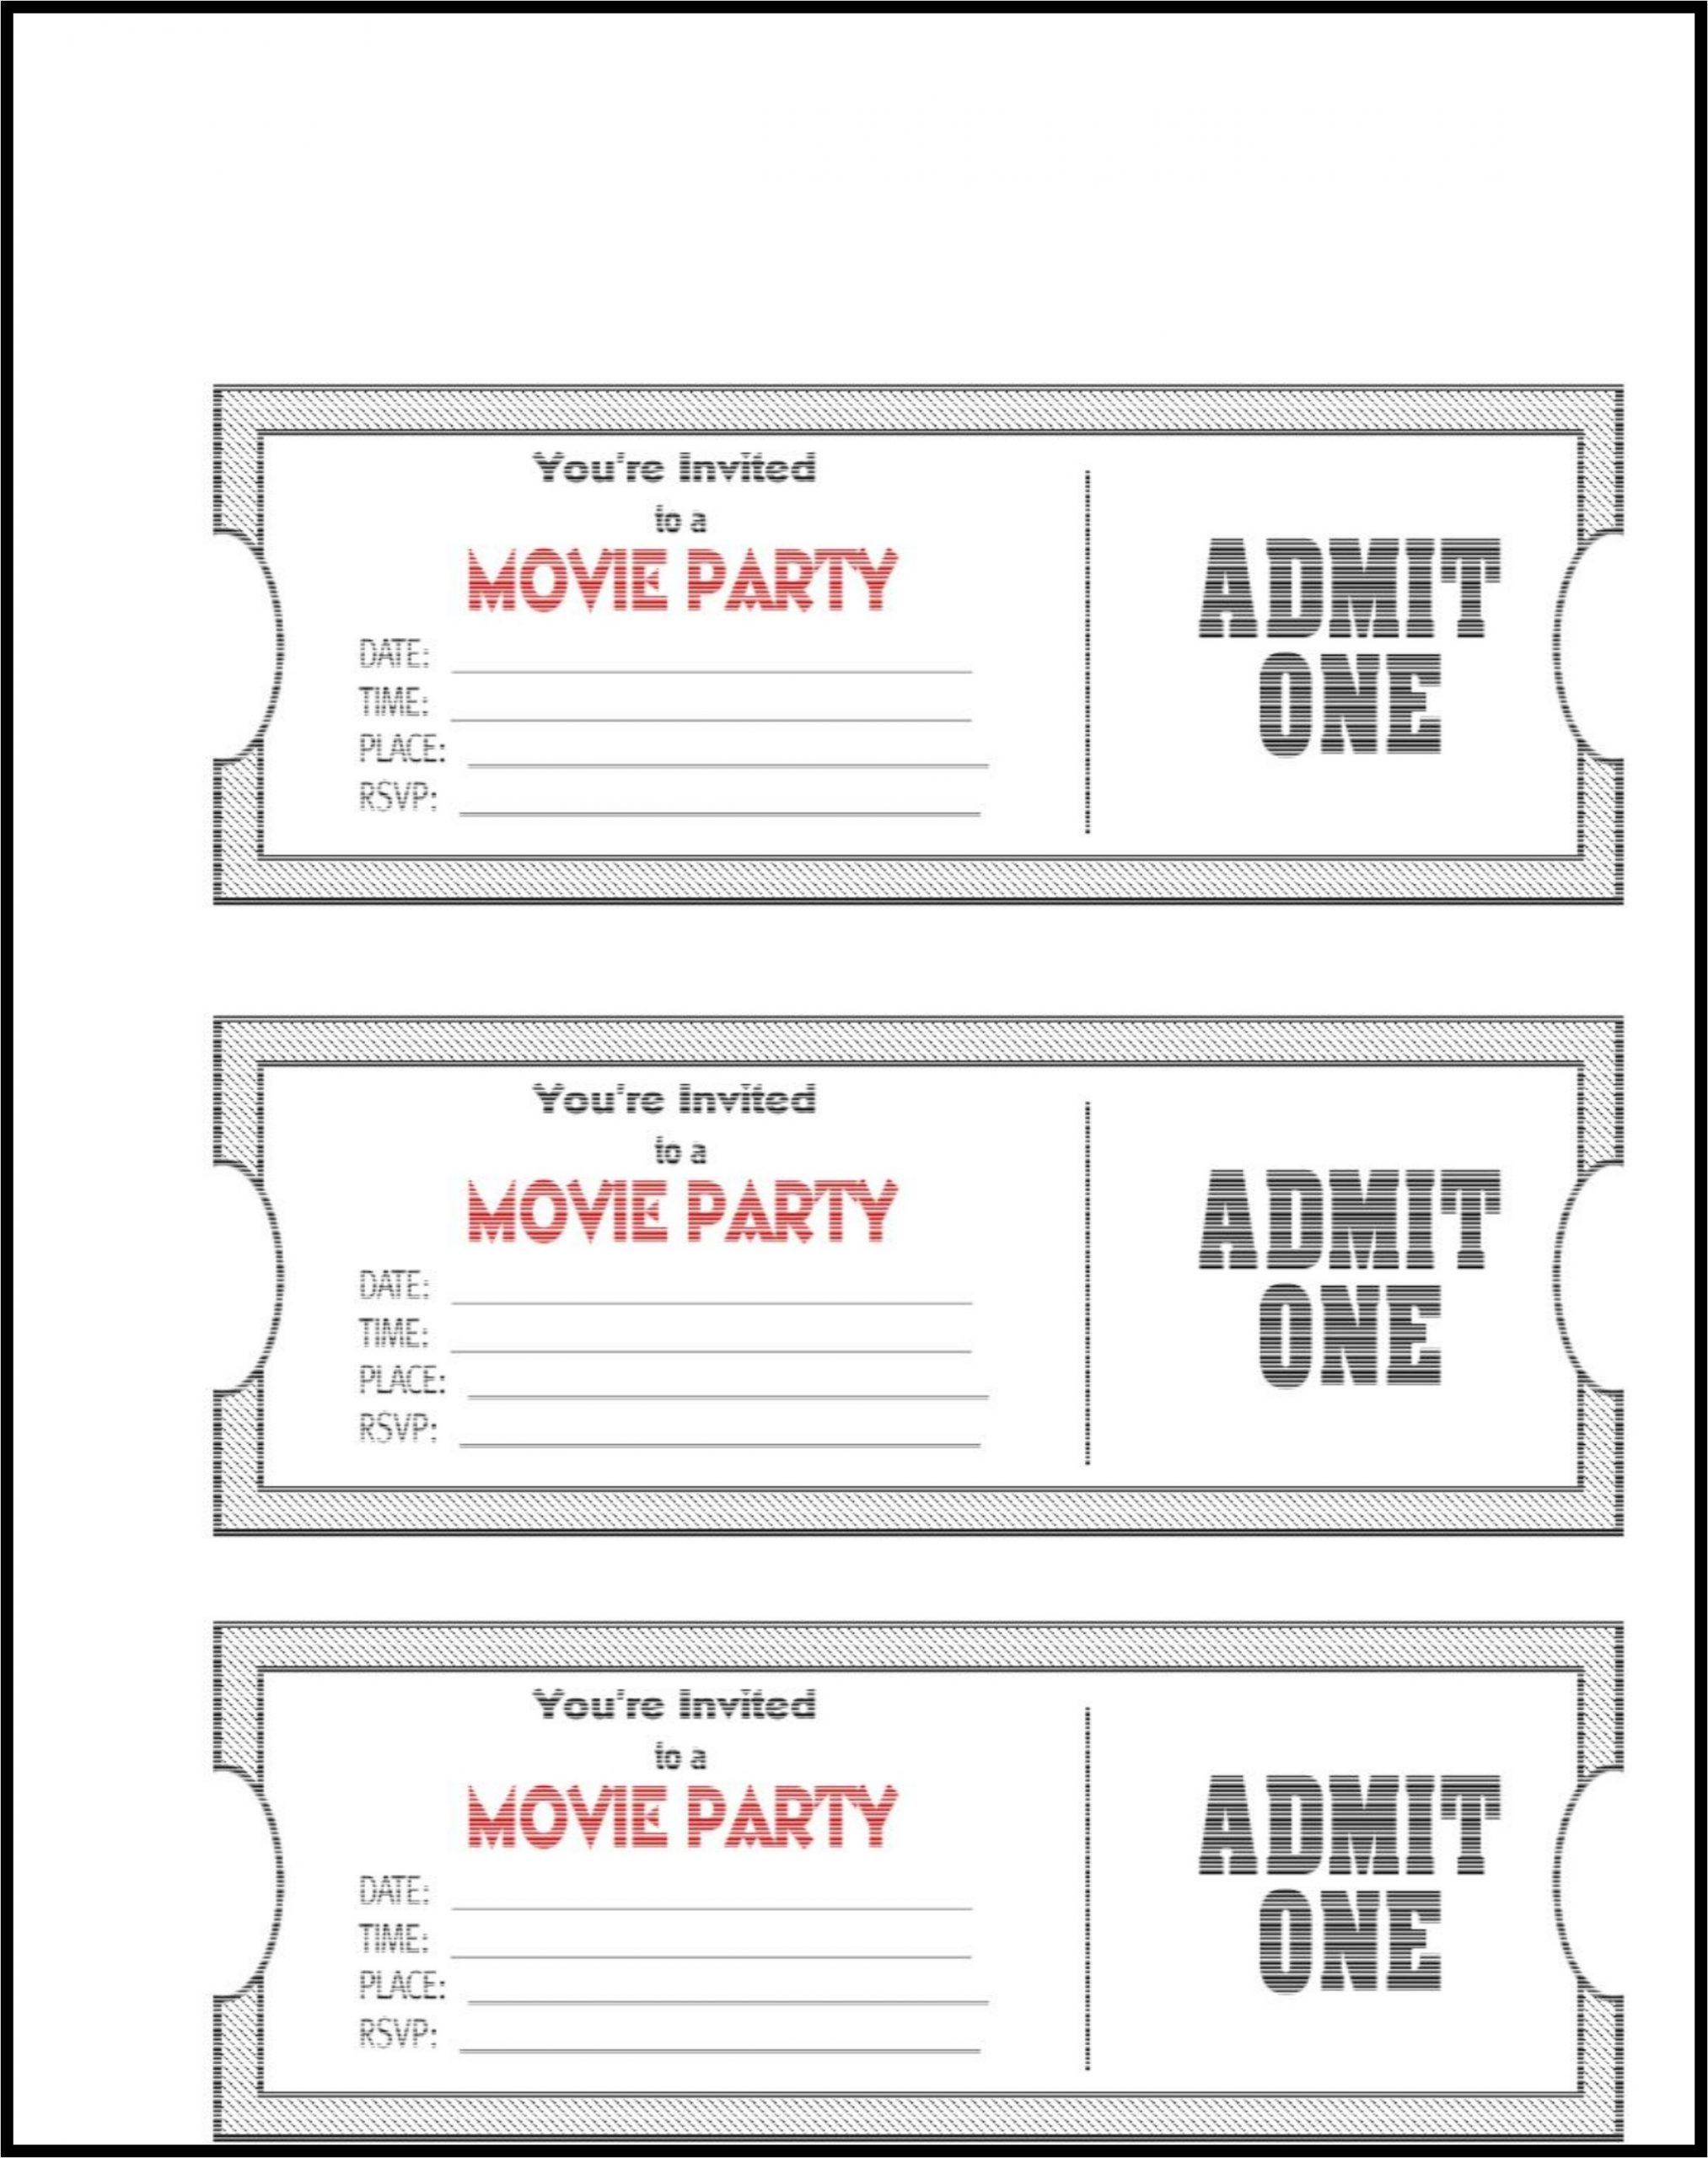 006 Impressive Editable Ticket Template Free High Definition  Word Airline RaffleFull